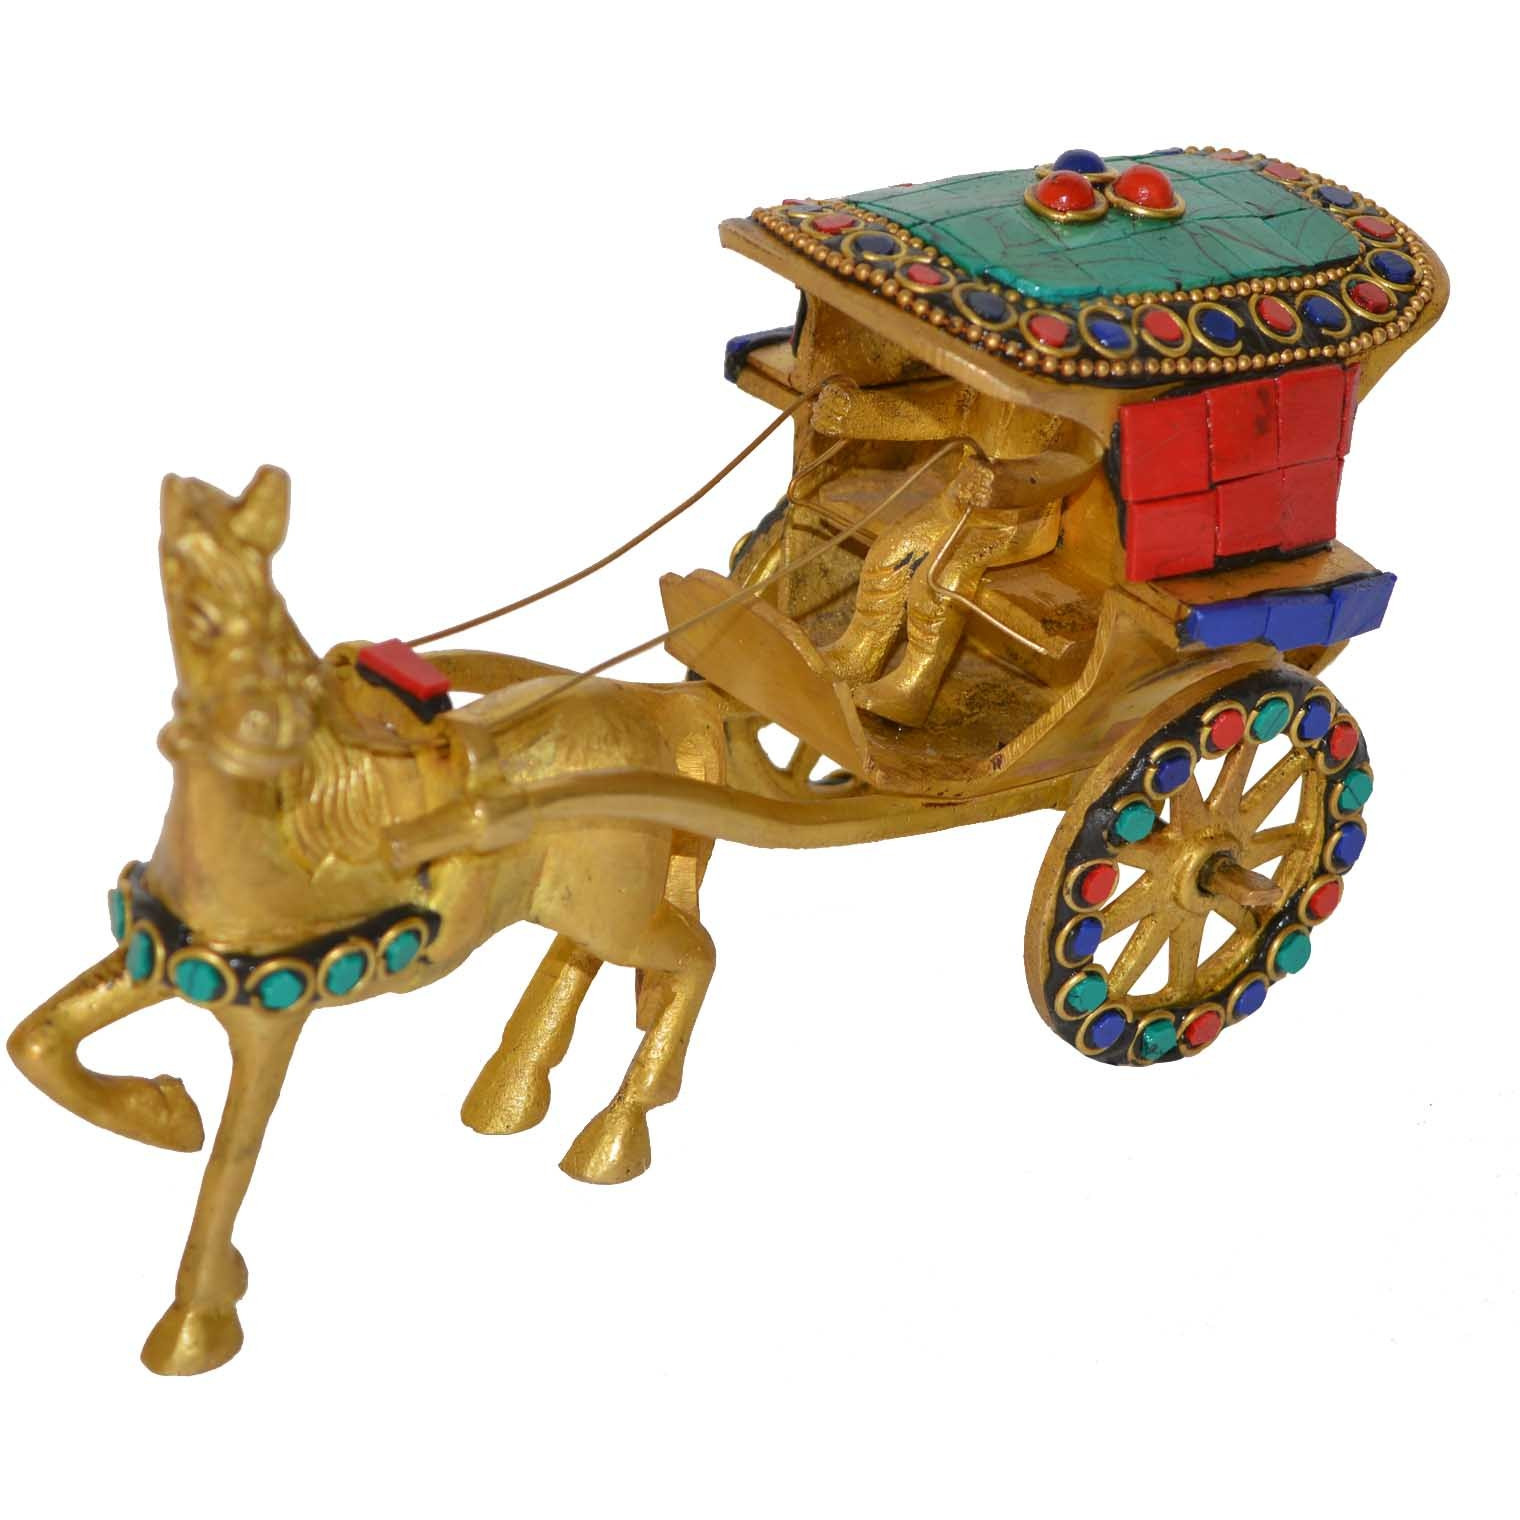 Aakrati Brass Horse Cart Handmade Antique Home Decoration Figurine Table Decoration Hotel Figurines Functional Replica with A Small Rider